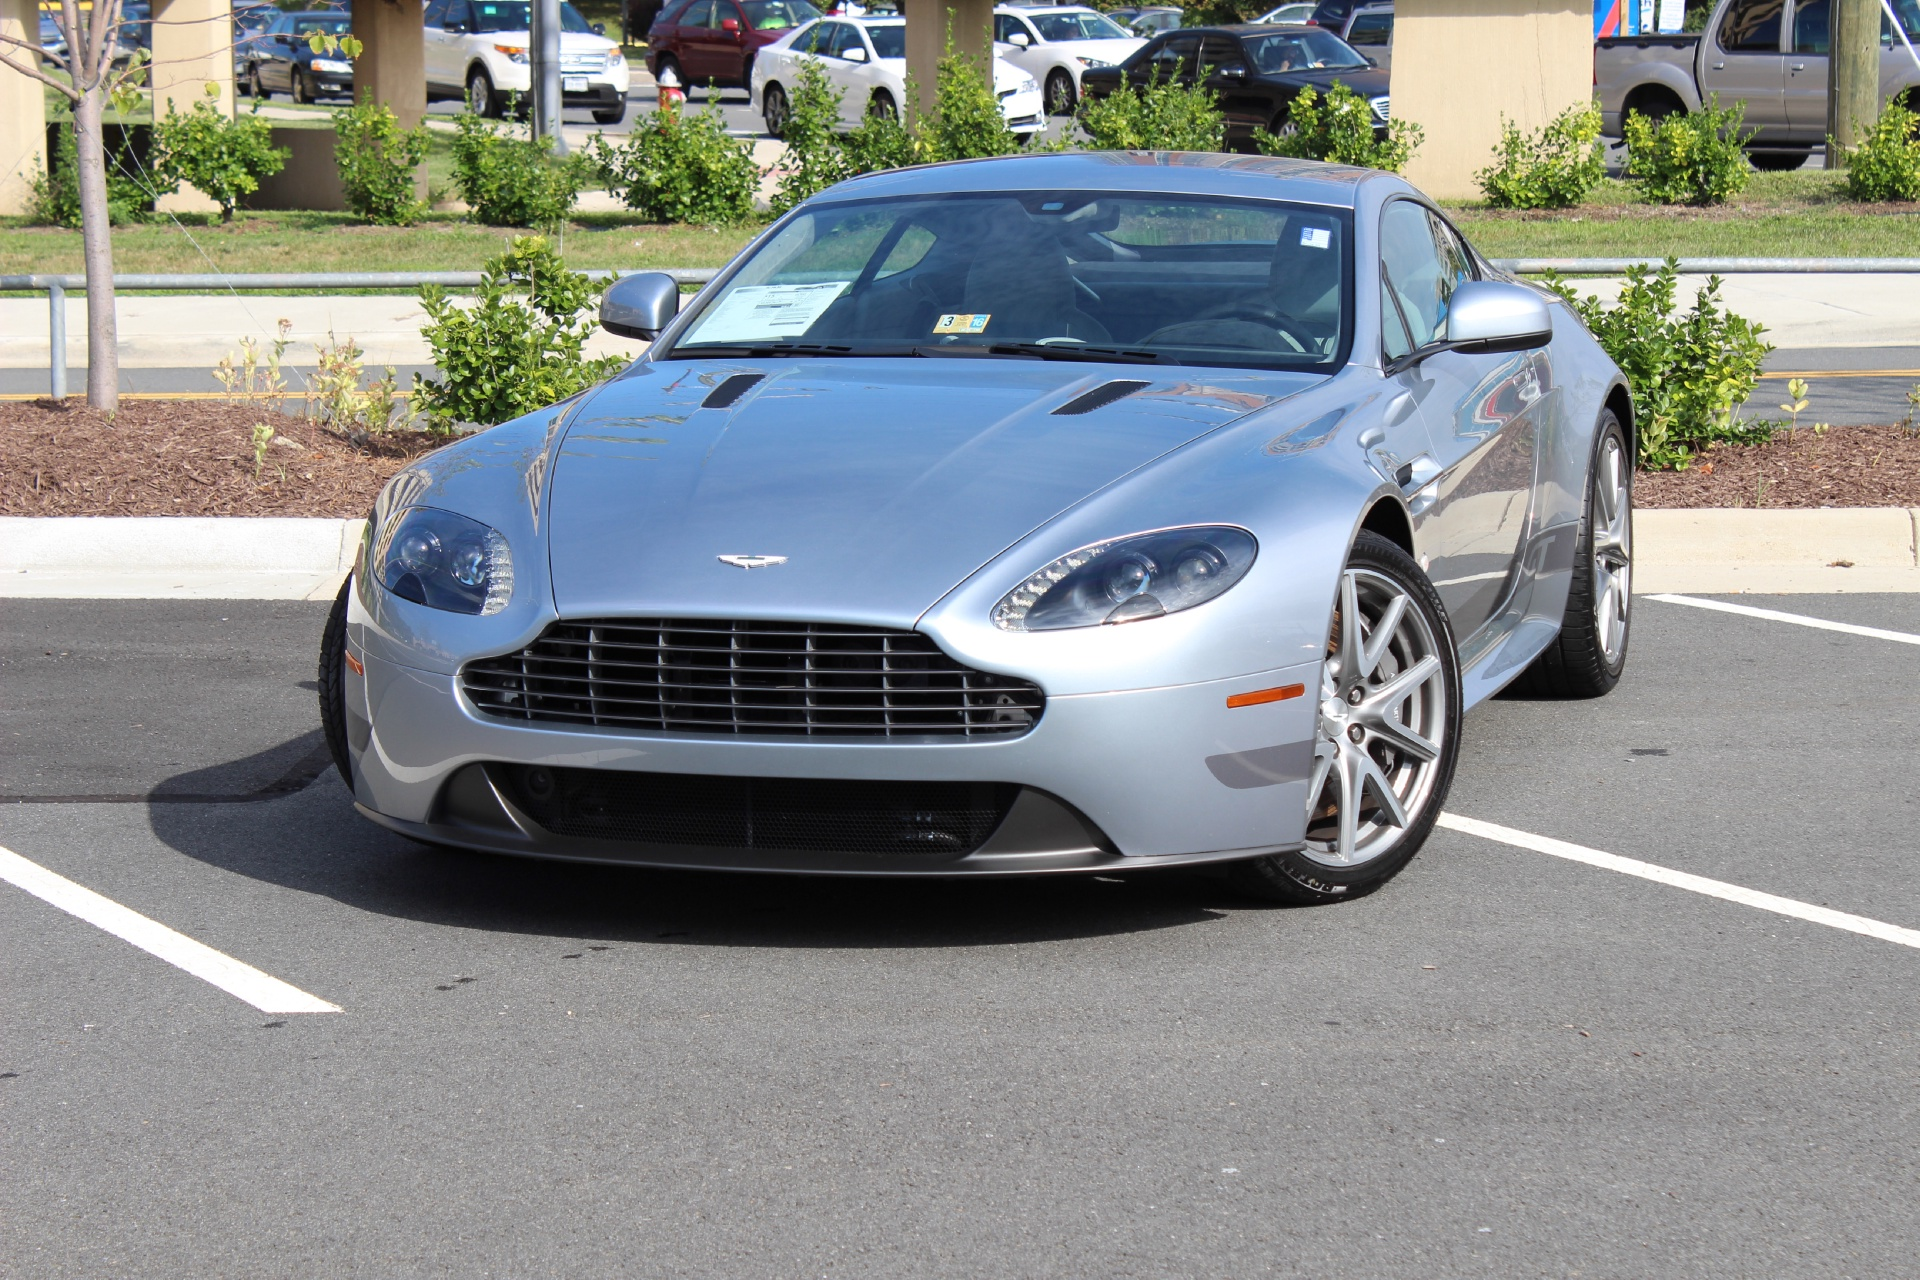 Aston Martin V Vantage GT GT Stock C For Sale Near - Aston martin gt